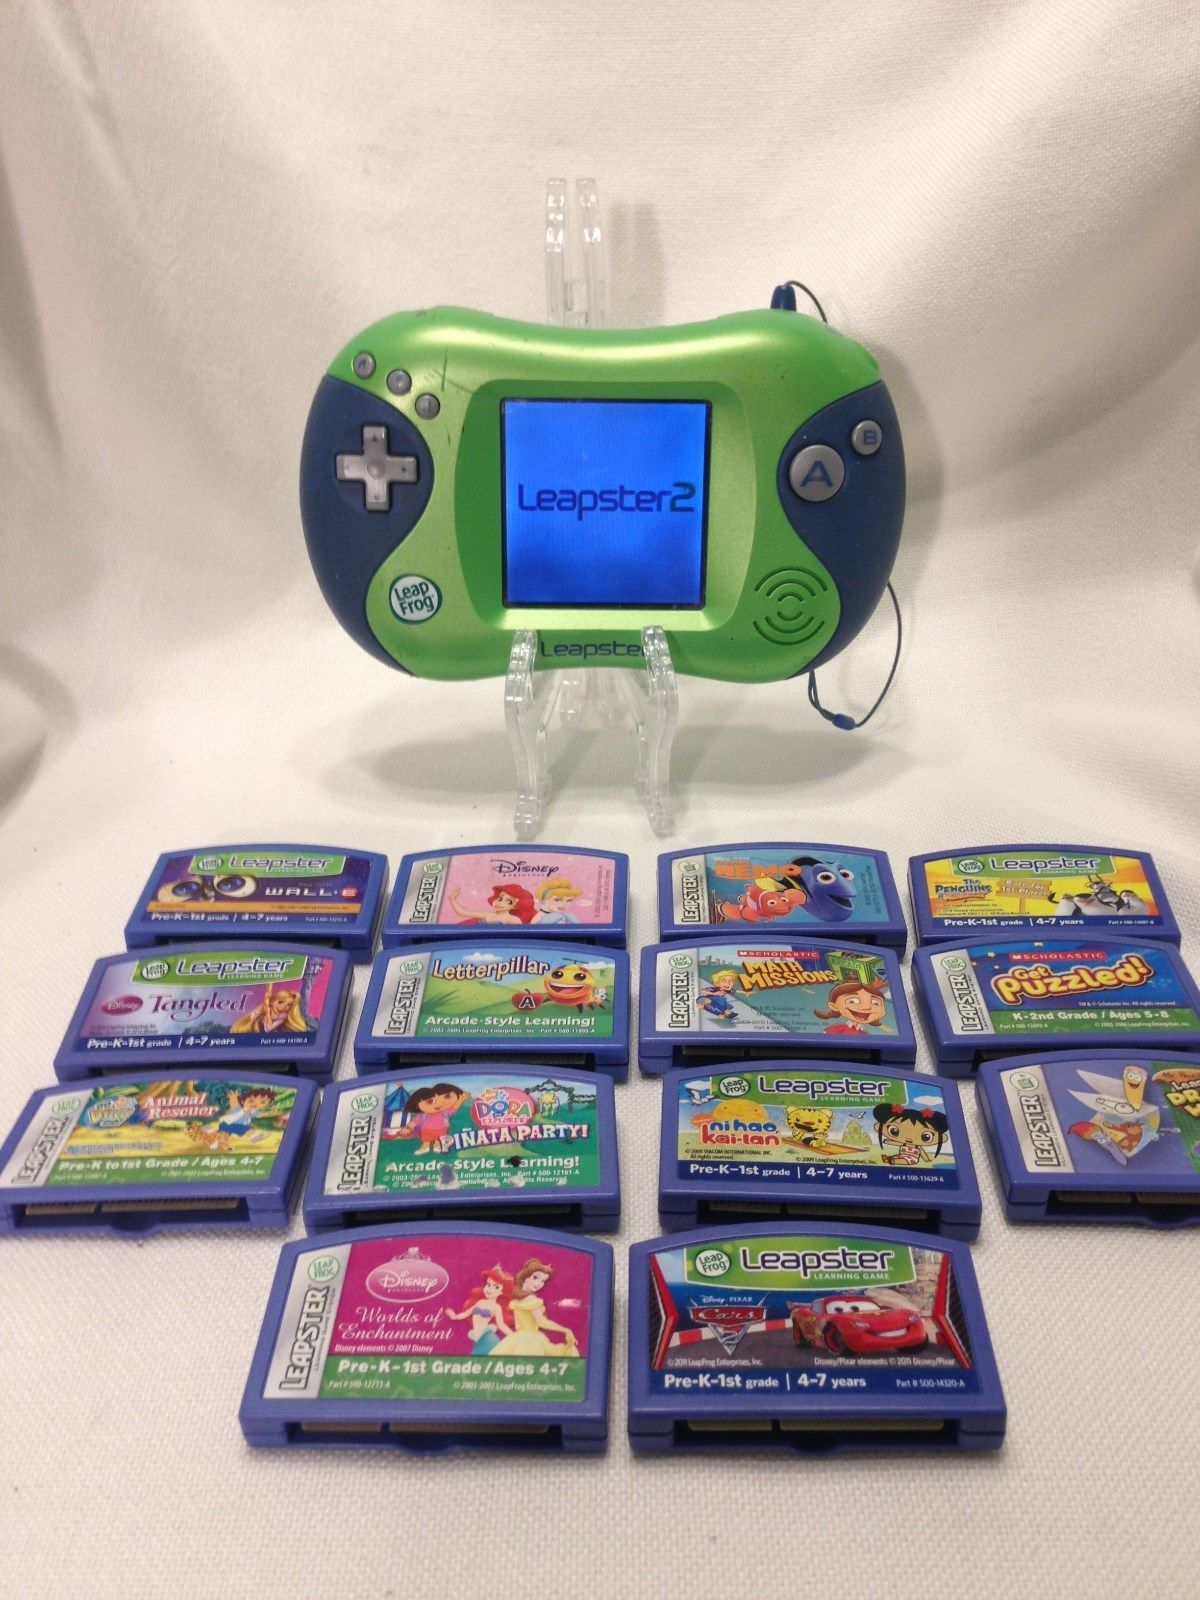 Leapster 2 Leap Frog Video Game System/Learning/Console